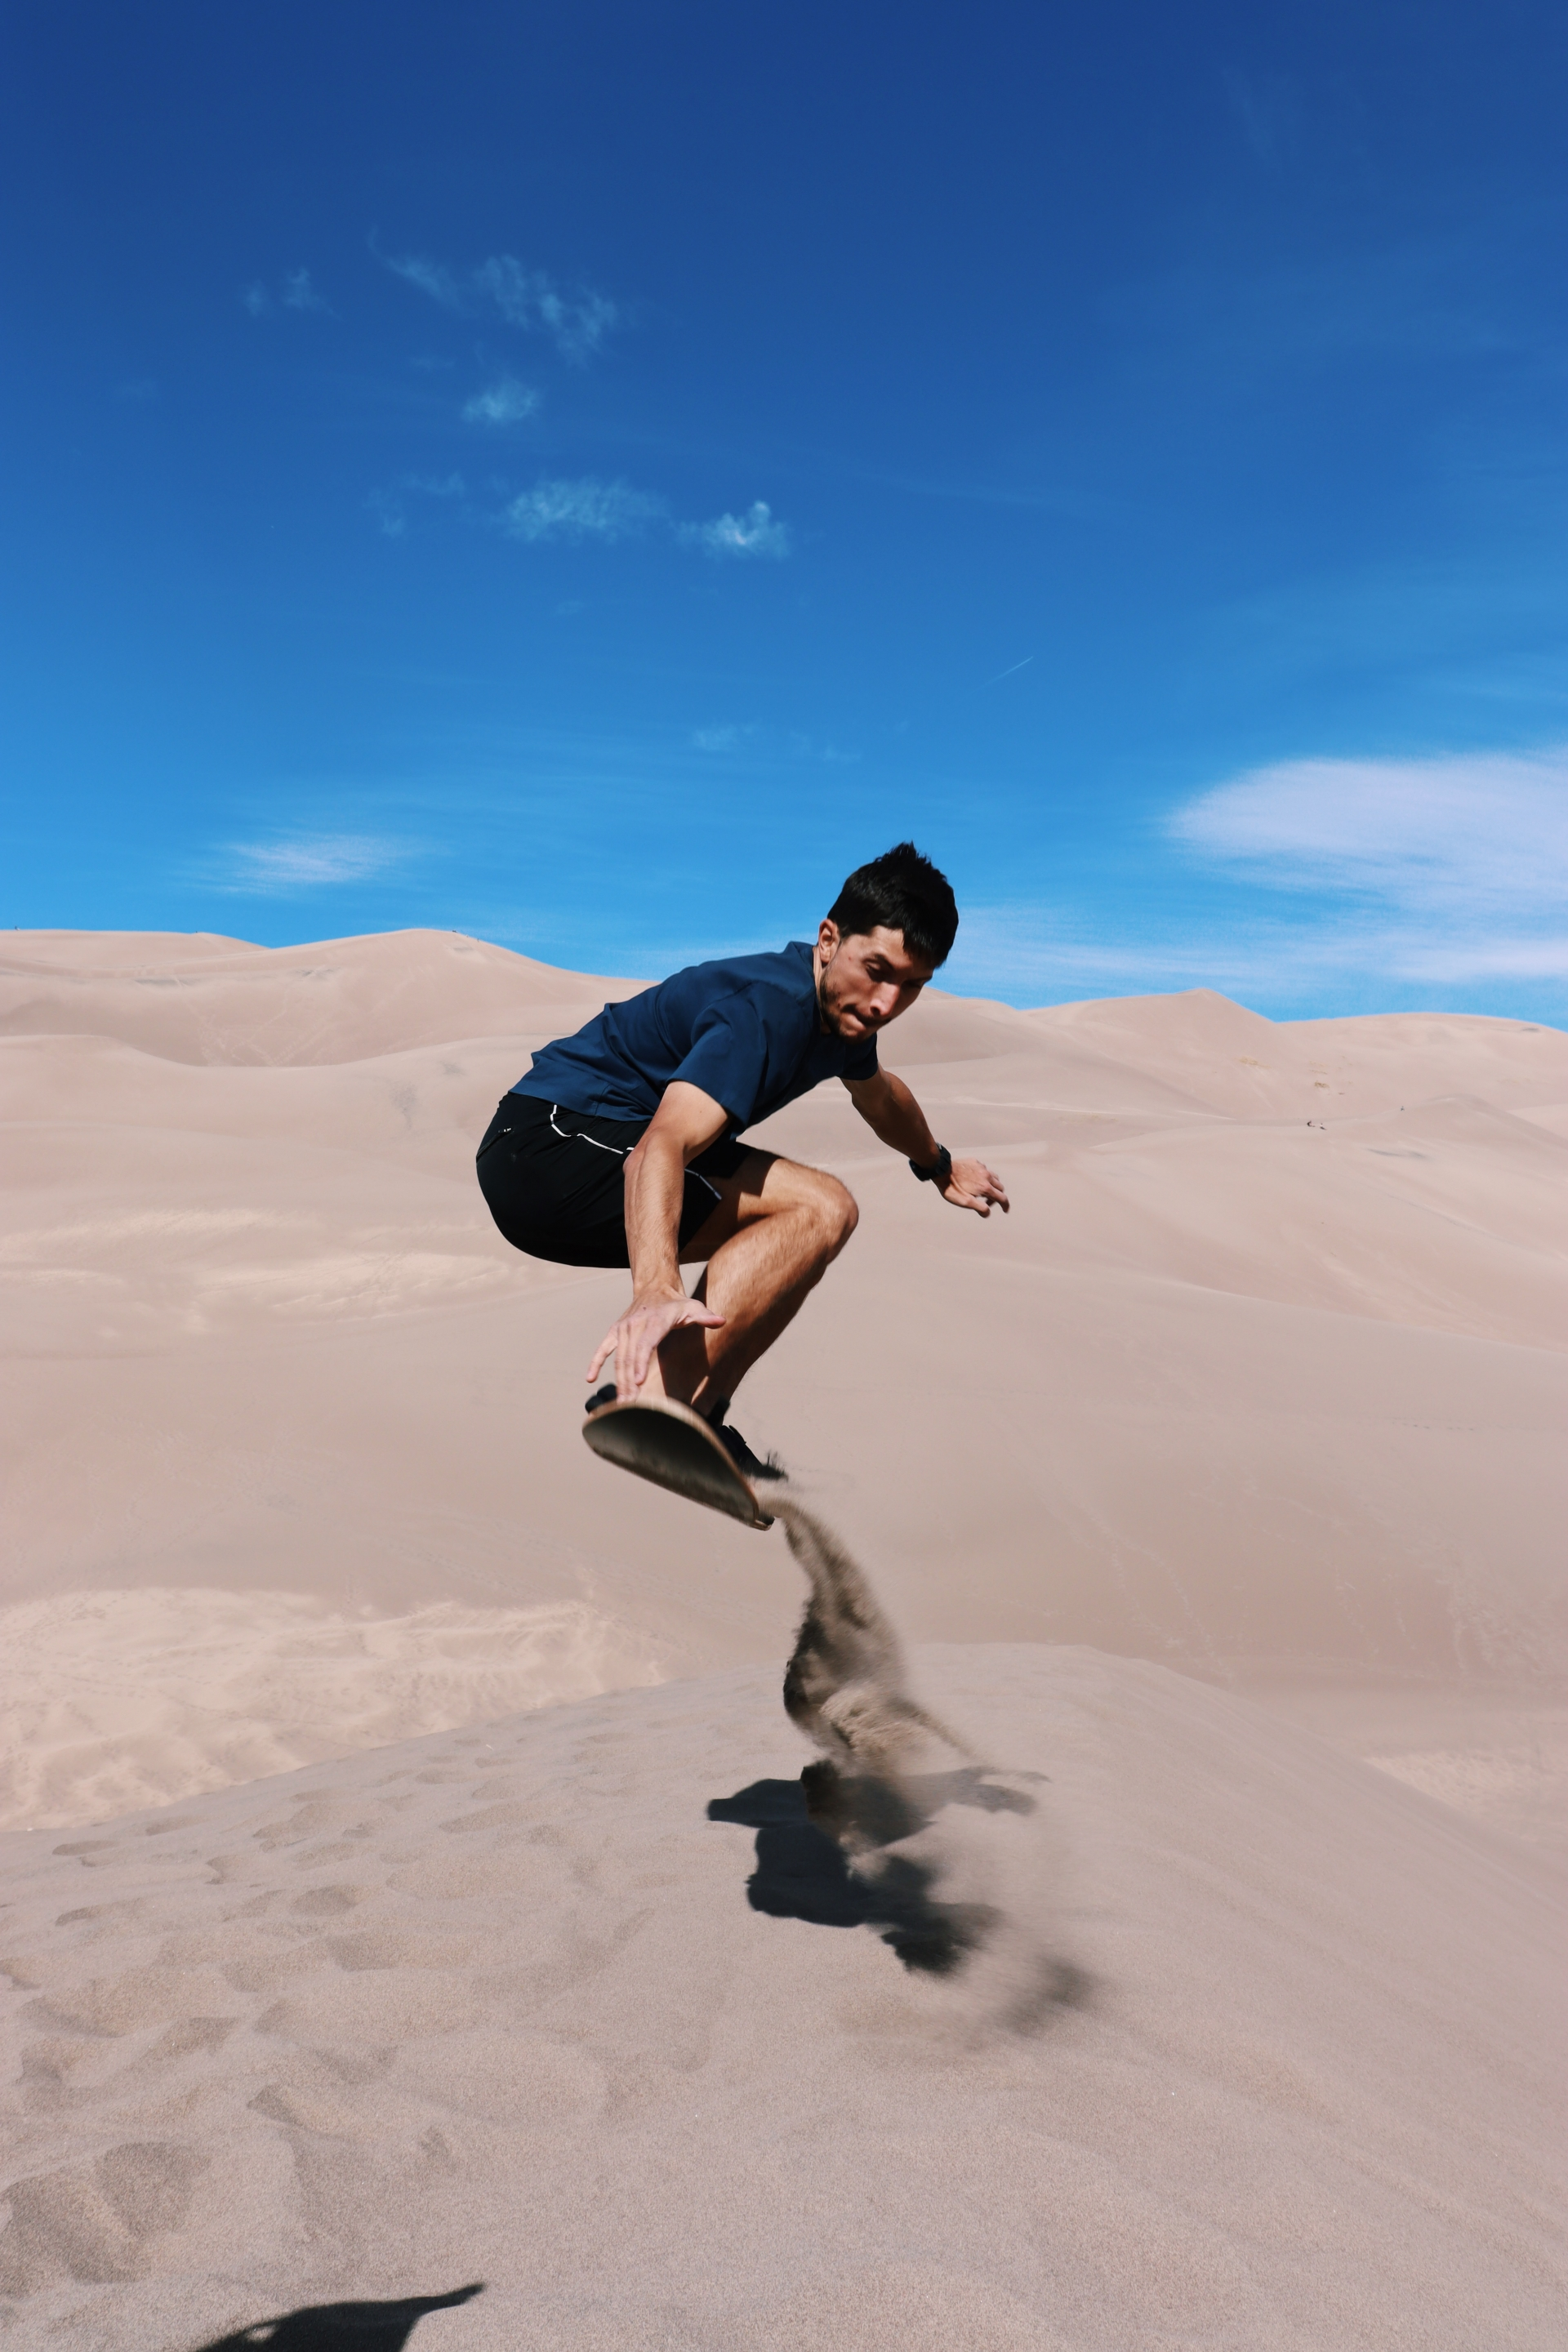 A young person sand boarding on a dune